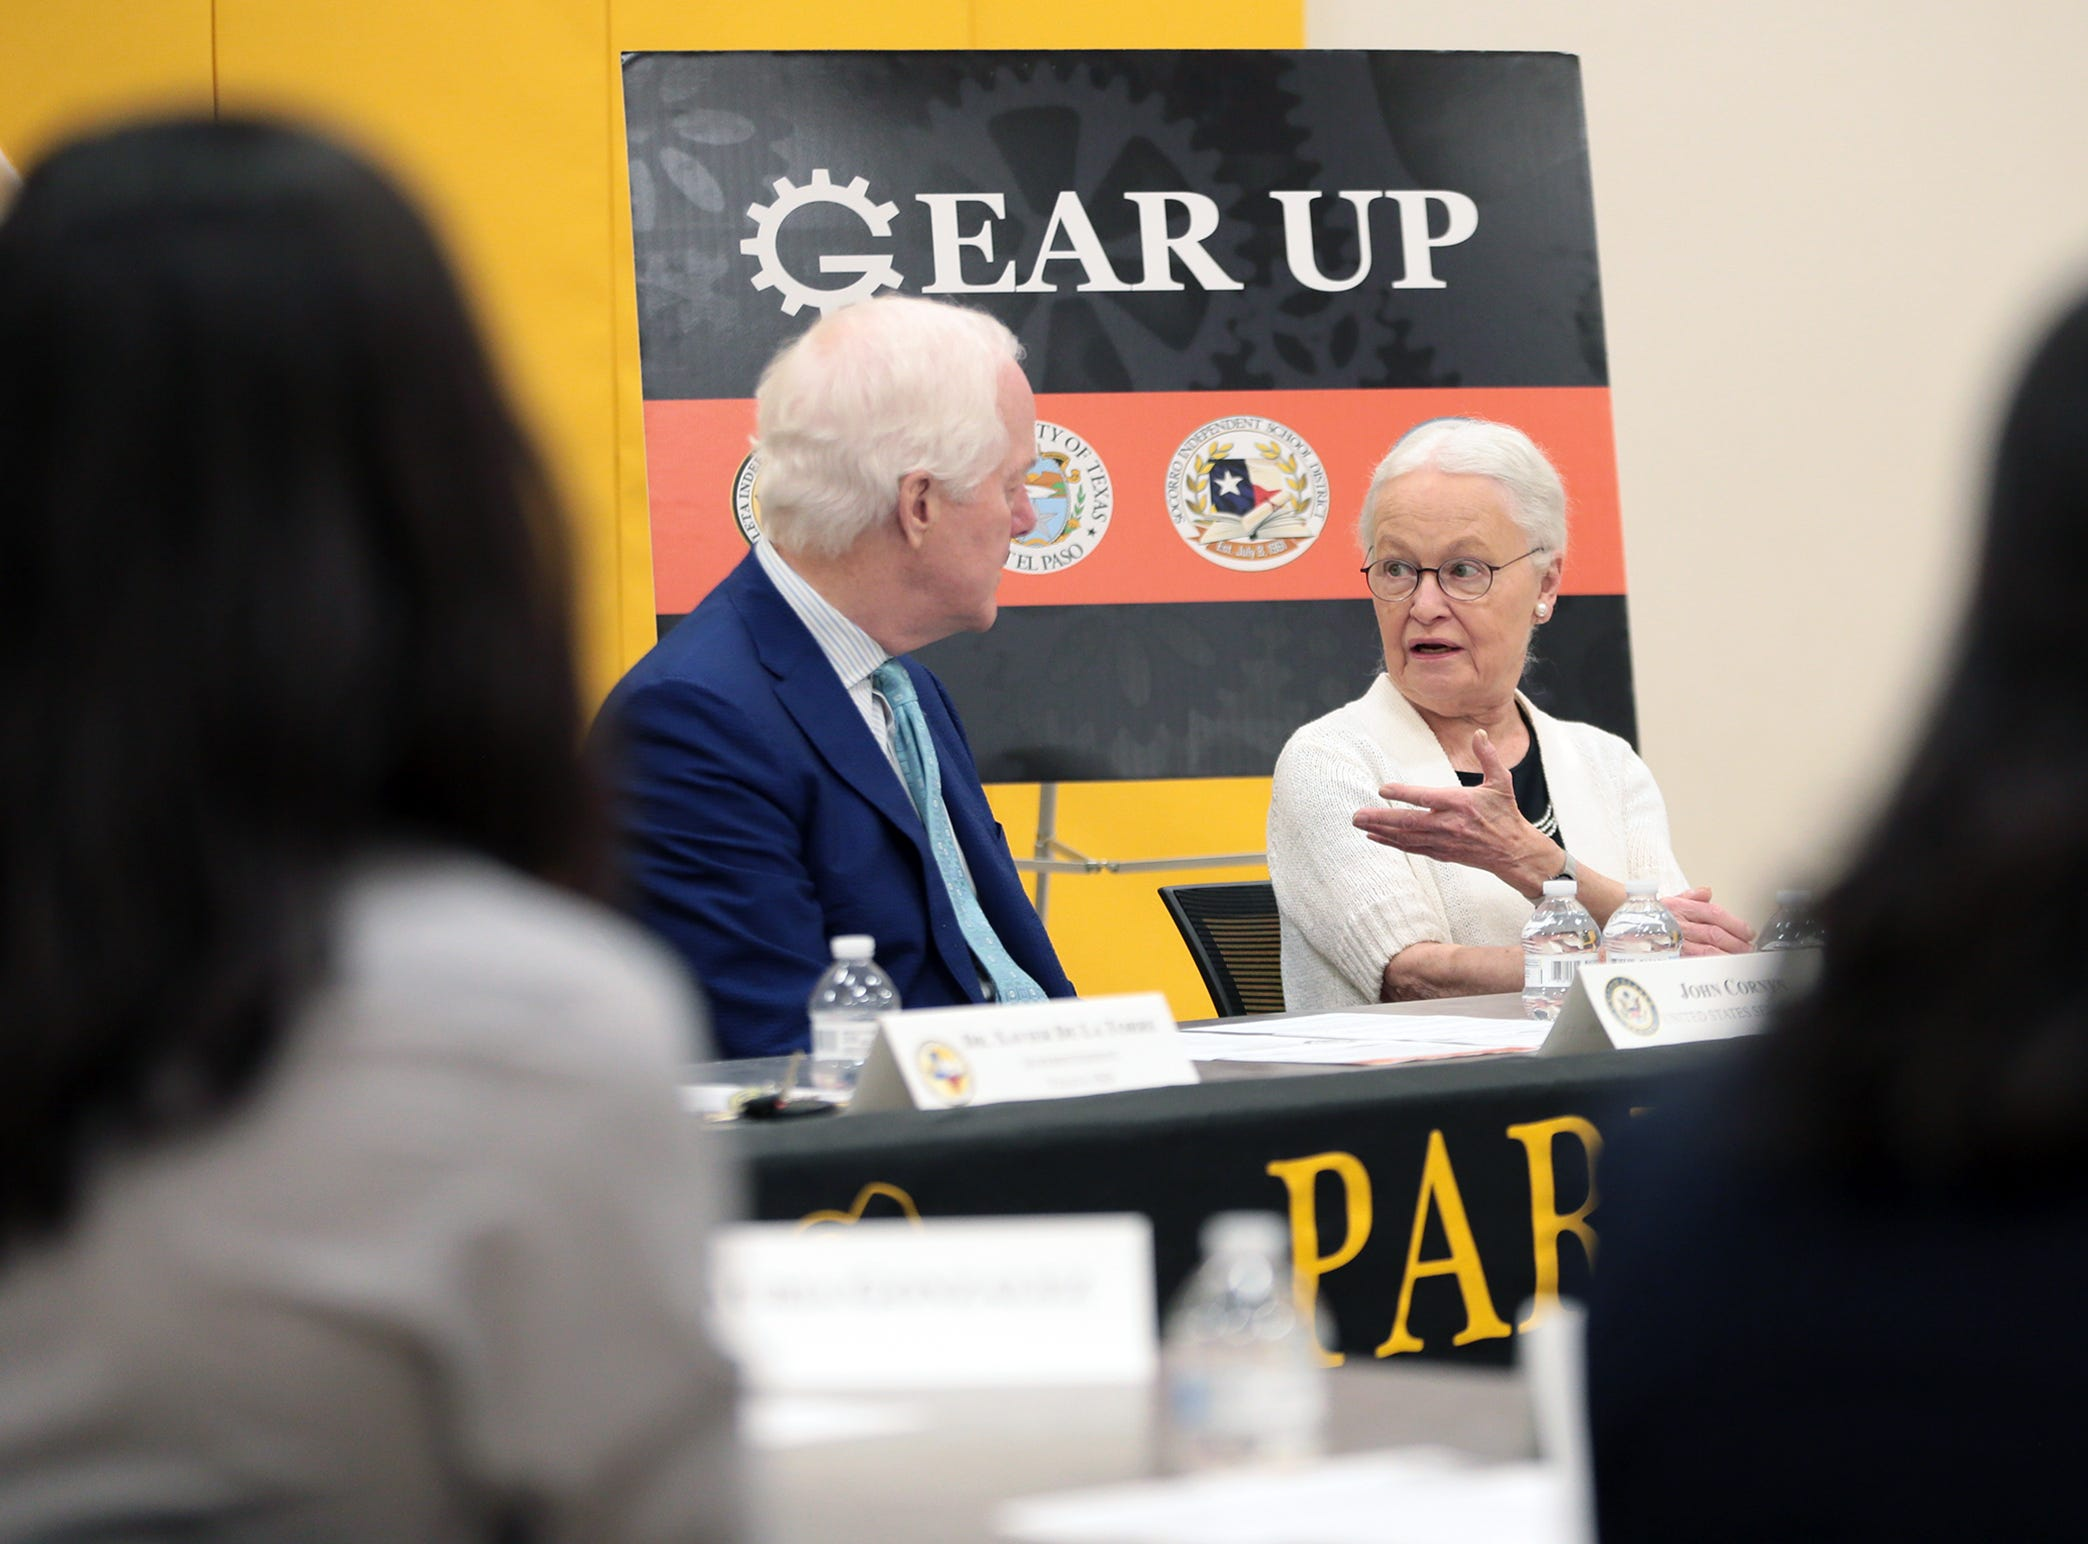 U.S. Sen. John Cornyn met with educators and students Tuesday at Parkland Middle School where he learned about the benefits of the Gear Up Act in practice. Cornyn joined UTEP President Dr. Diana Natalicio and YISD Superintendent Xavier de la Torre at the meeting.